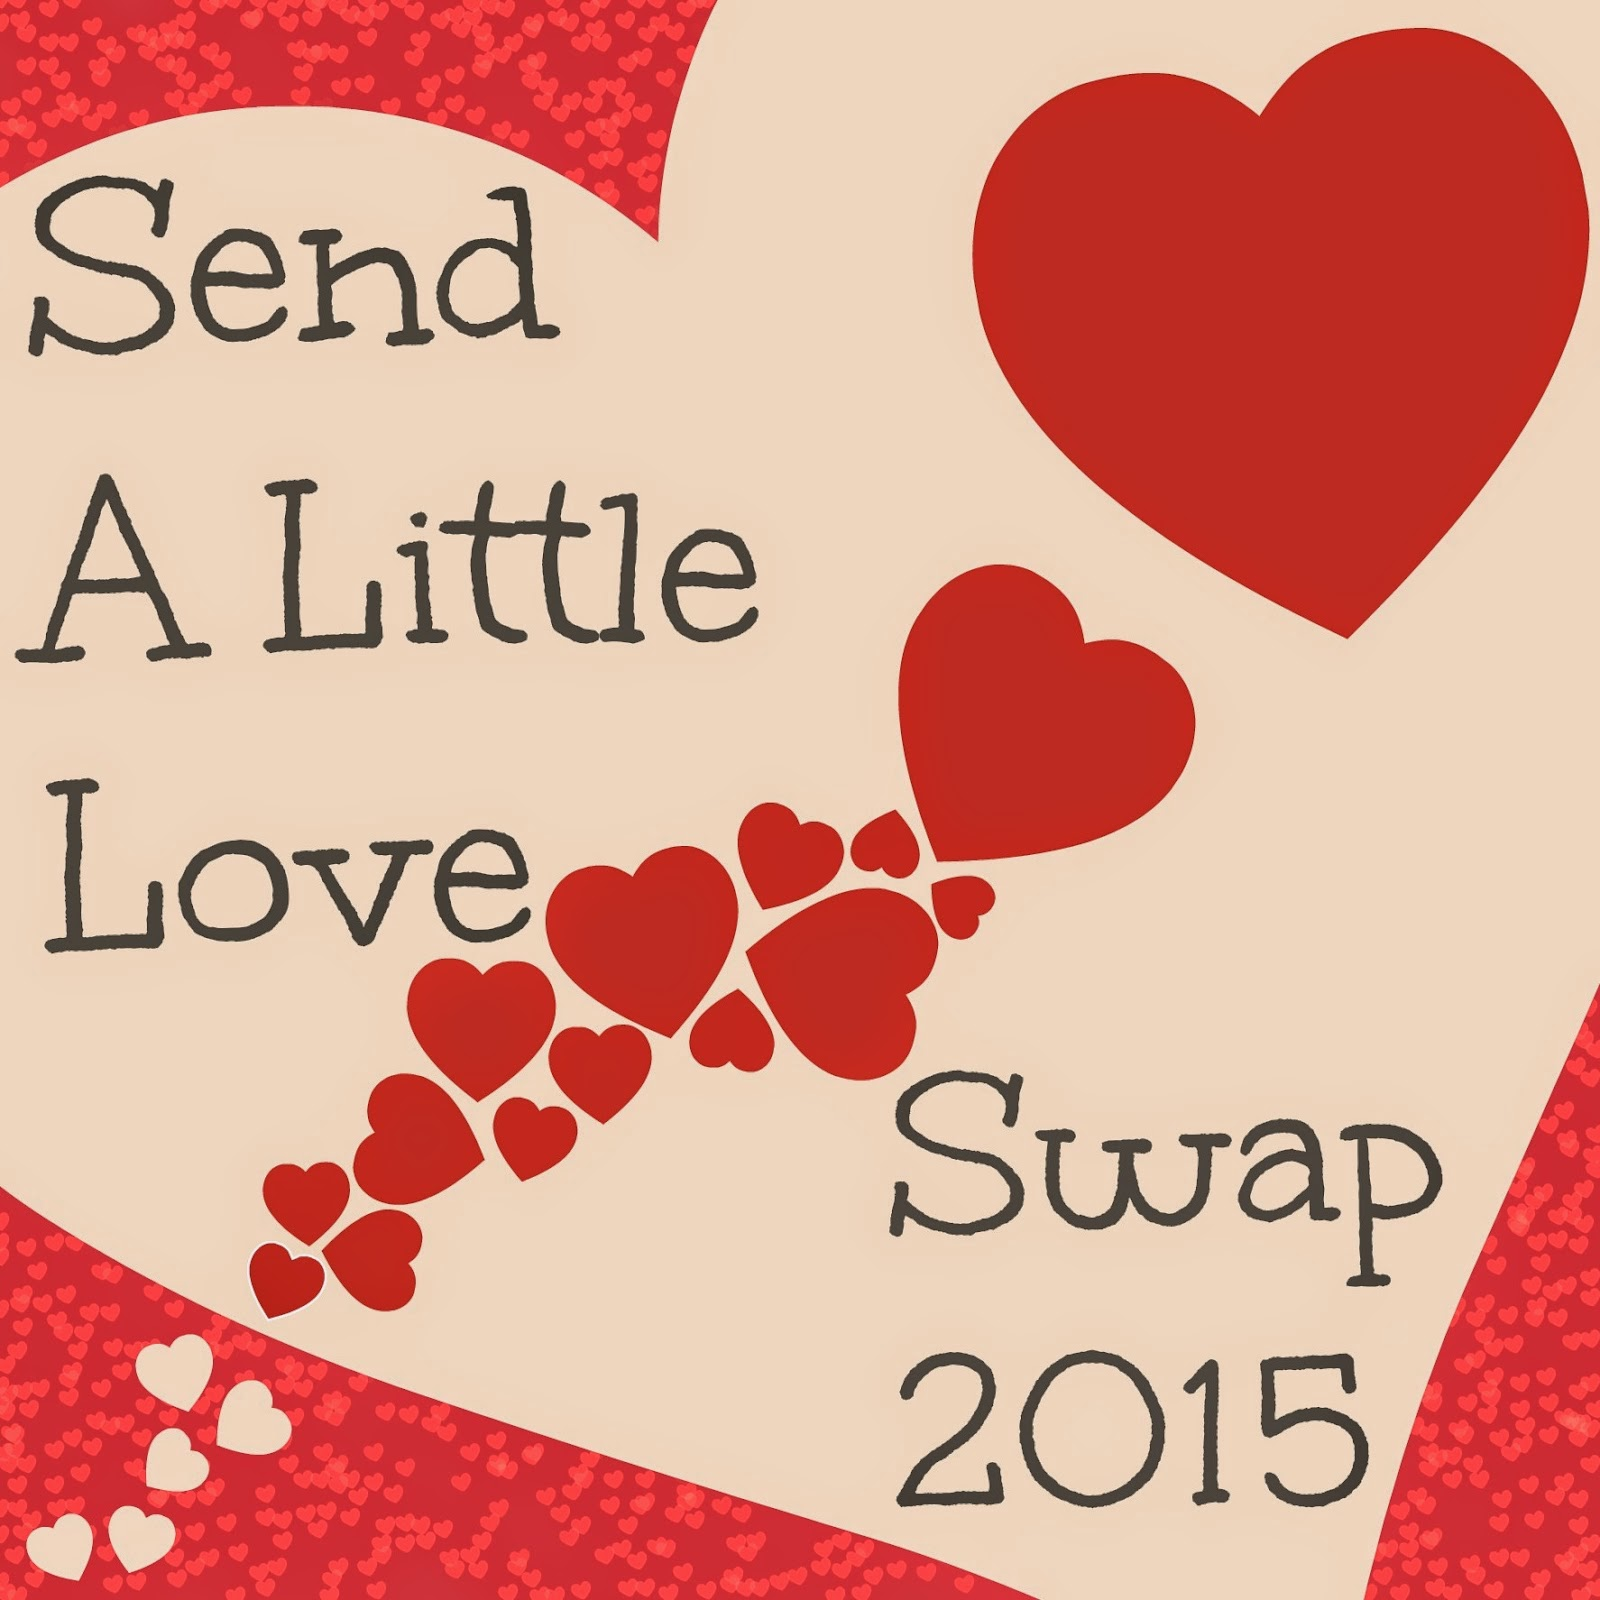 Im joining the Send a Little Love Swap 2015